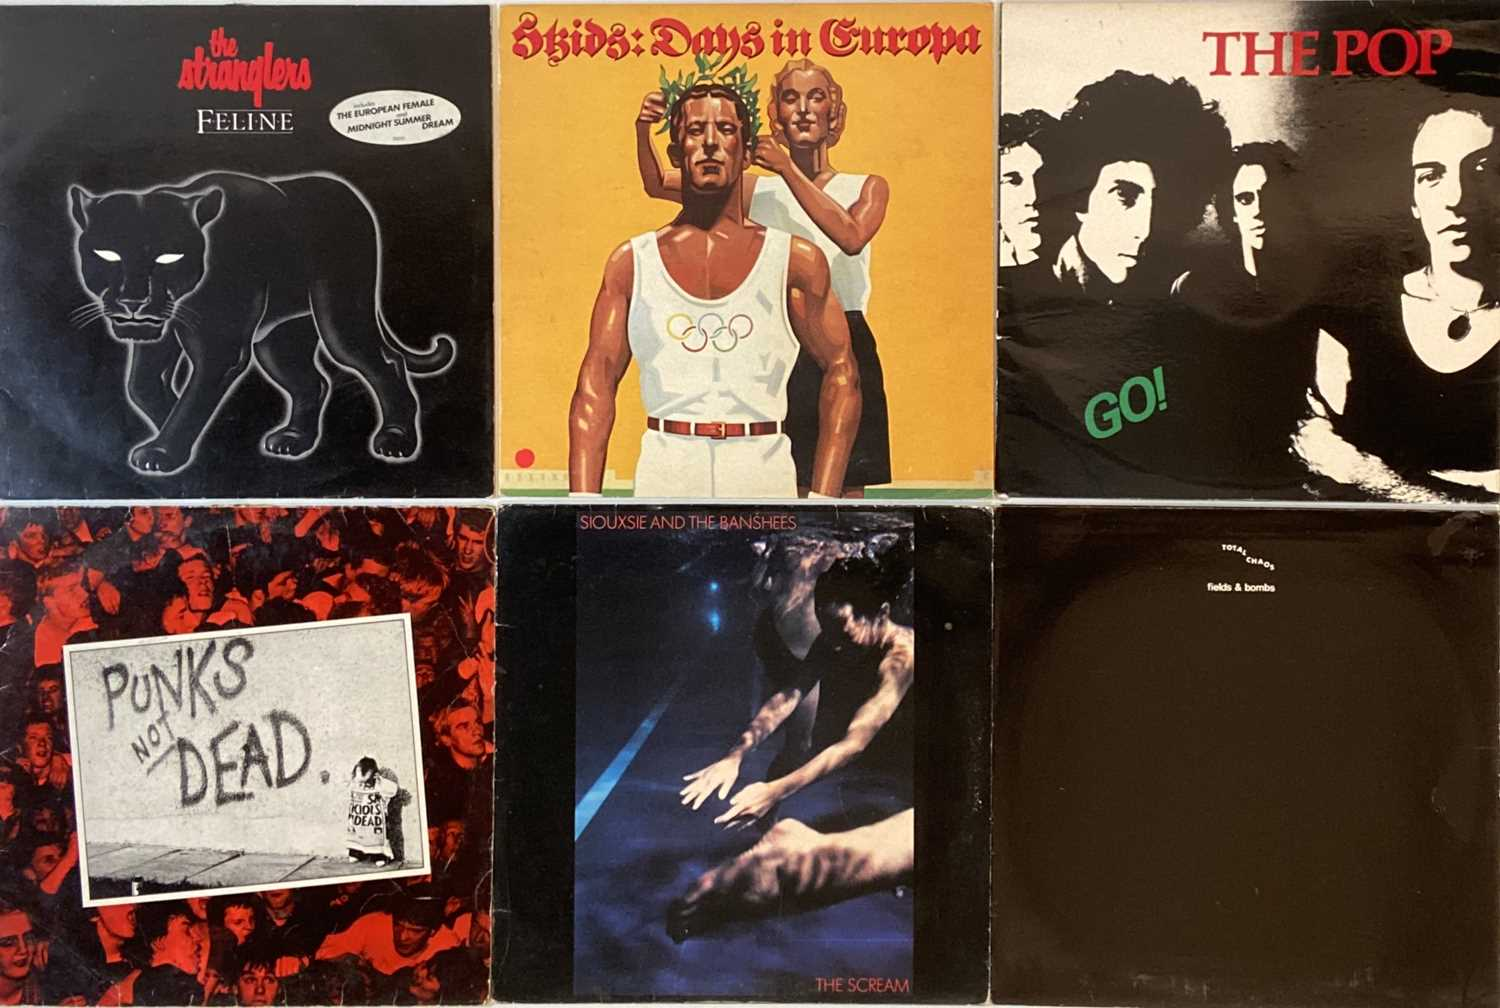 """PUNK/OI/NEW WAVE - LPs/12"""" - Image 3 of 4"""